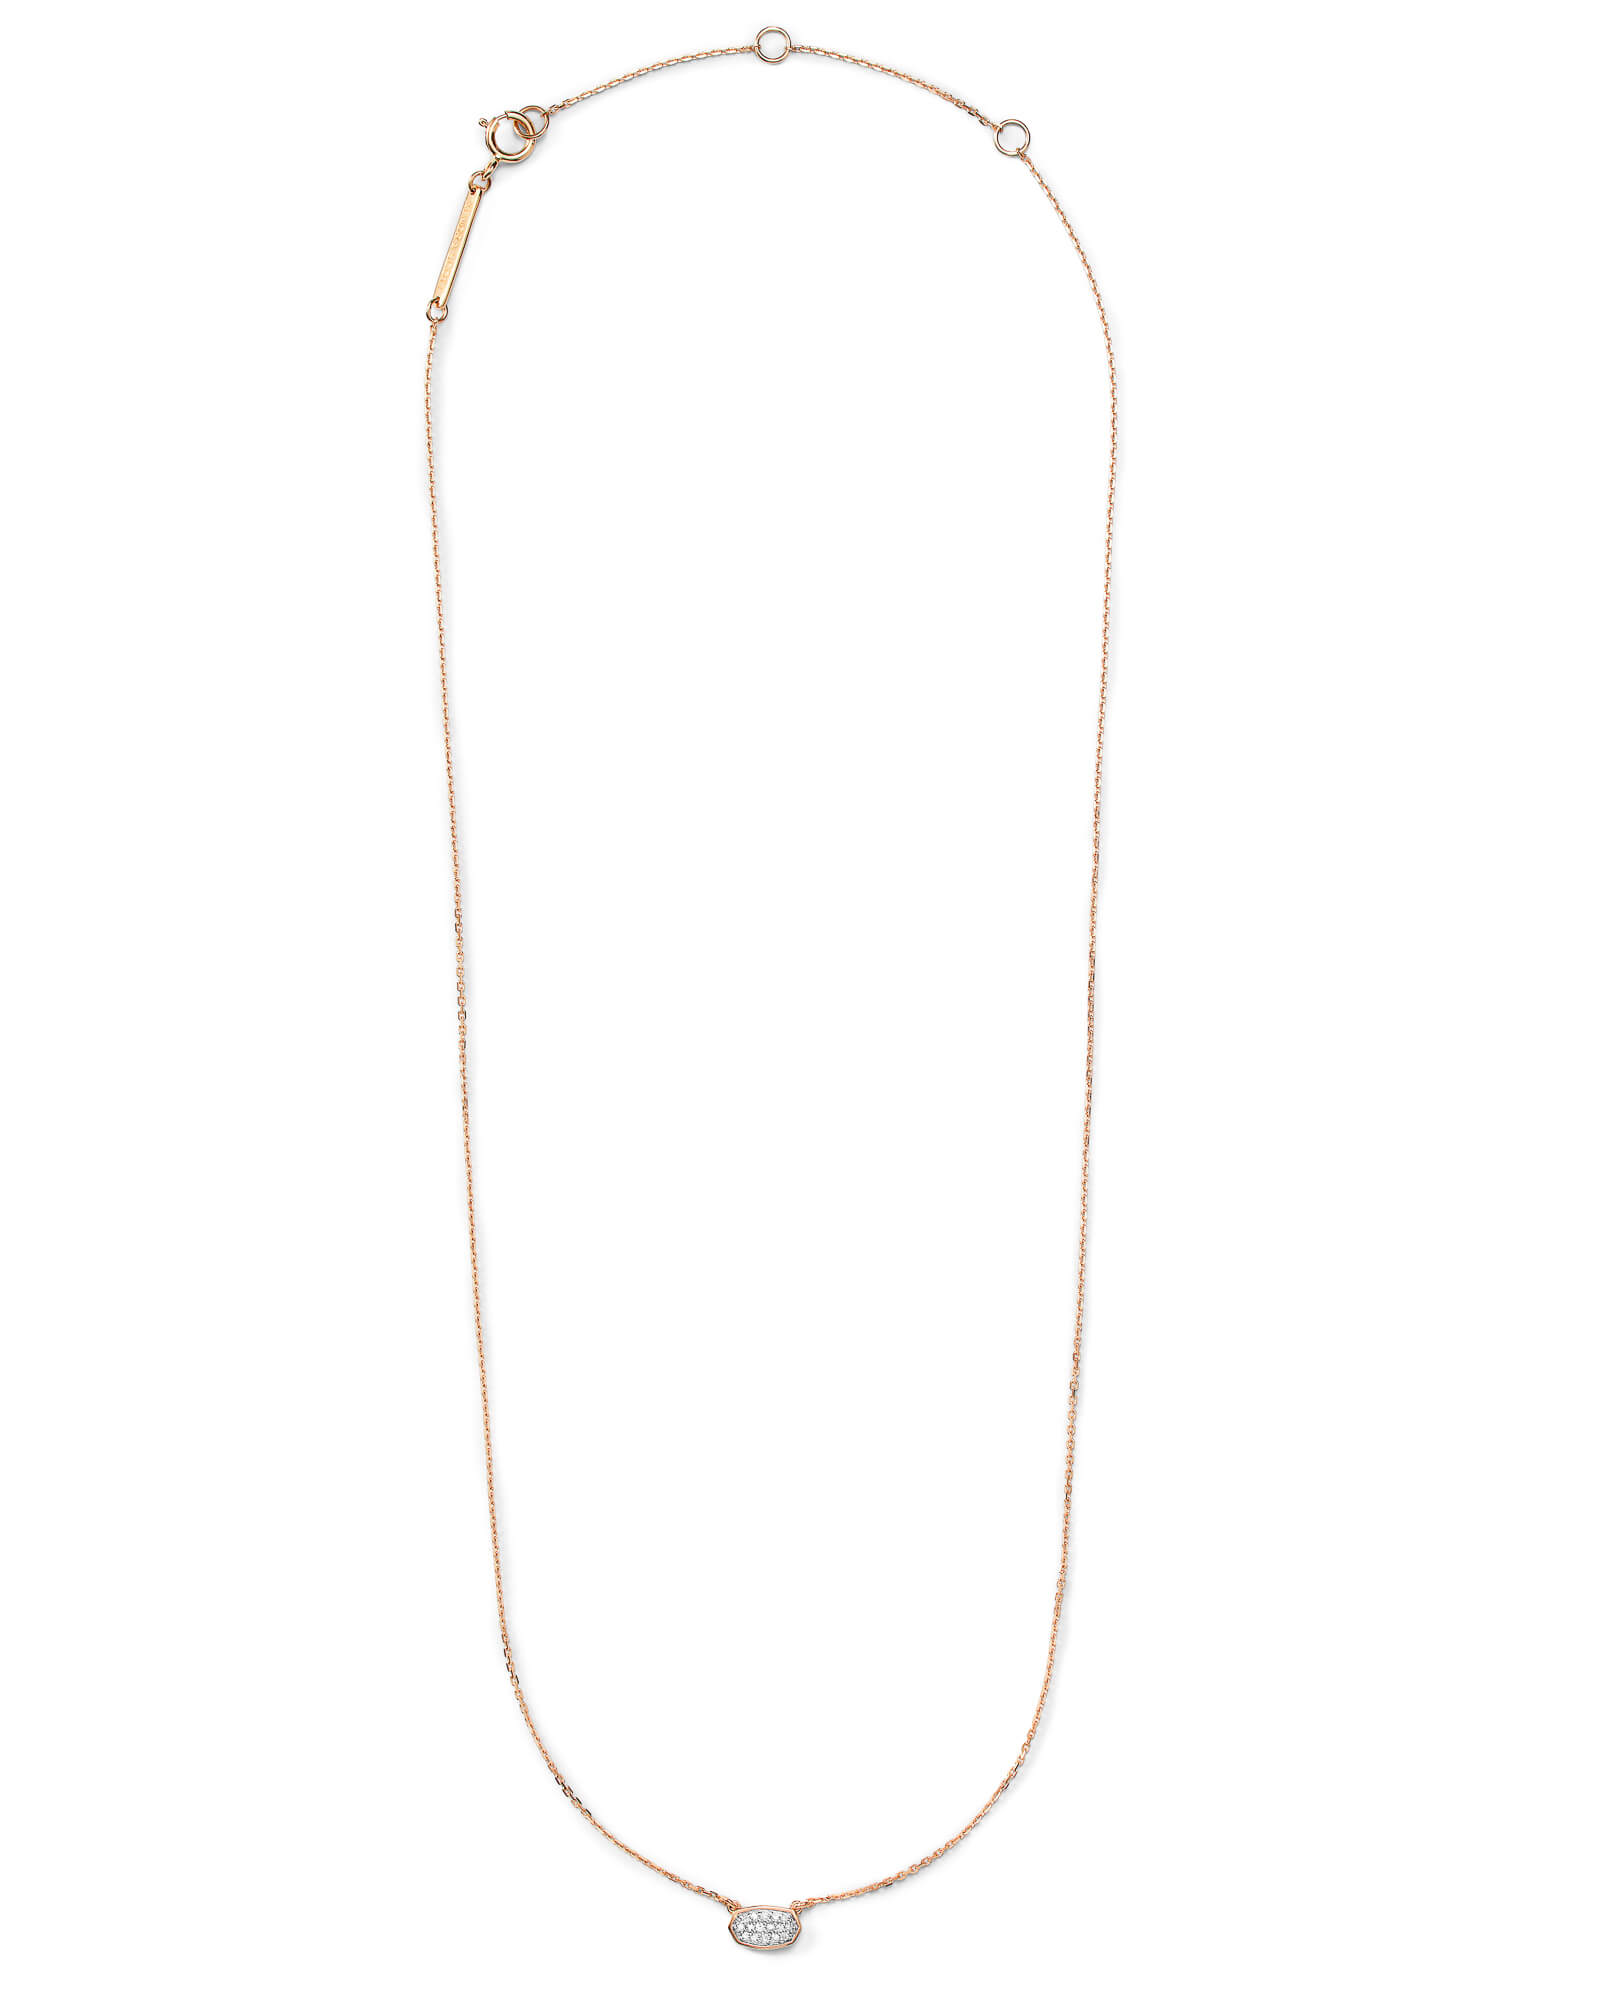 Marisa Pendant Necklace in White Diamond and 14k Rose Gold